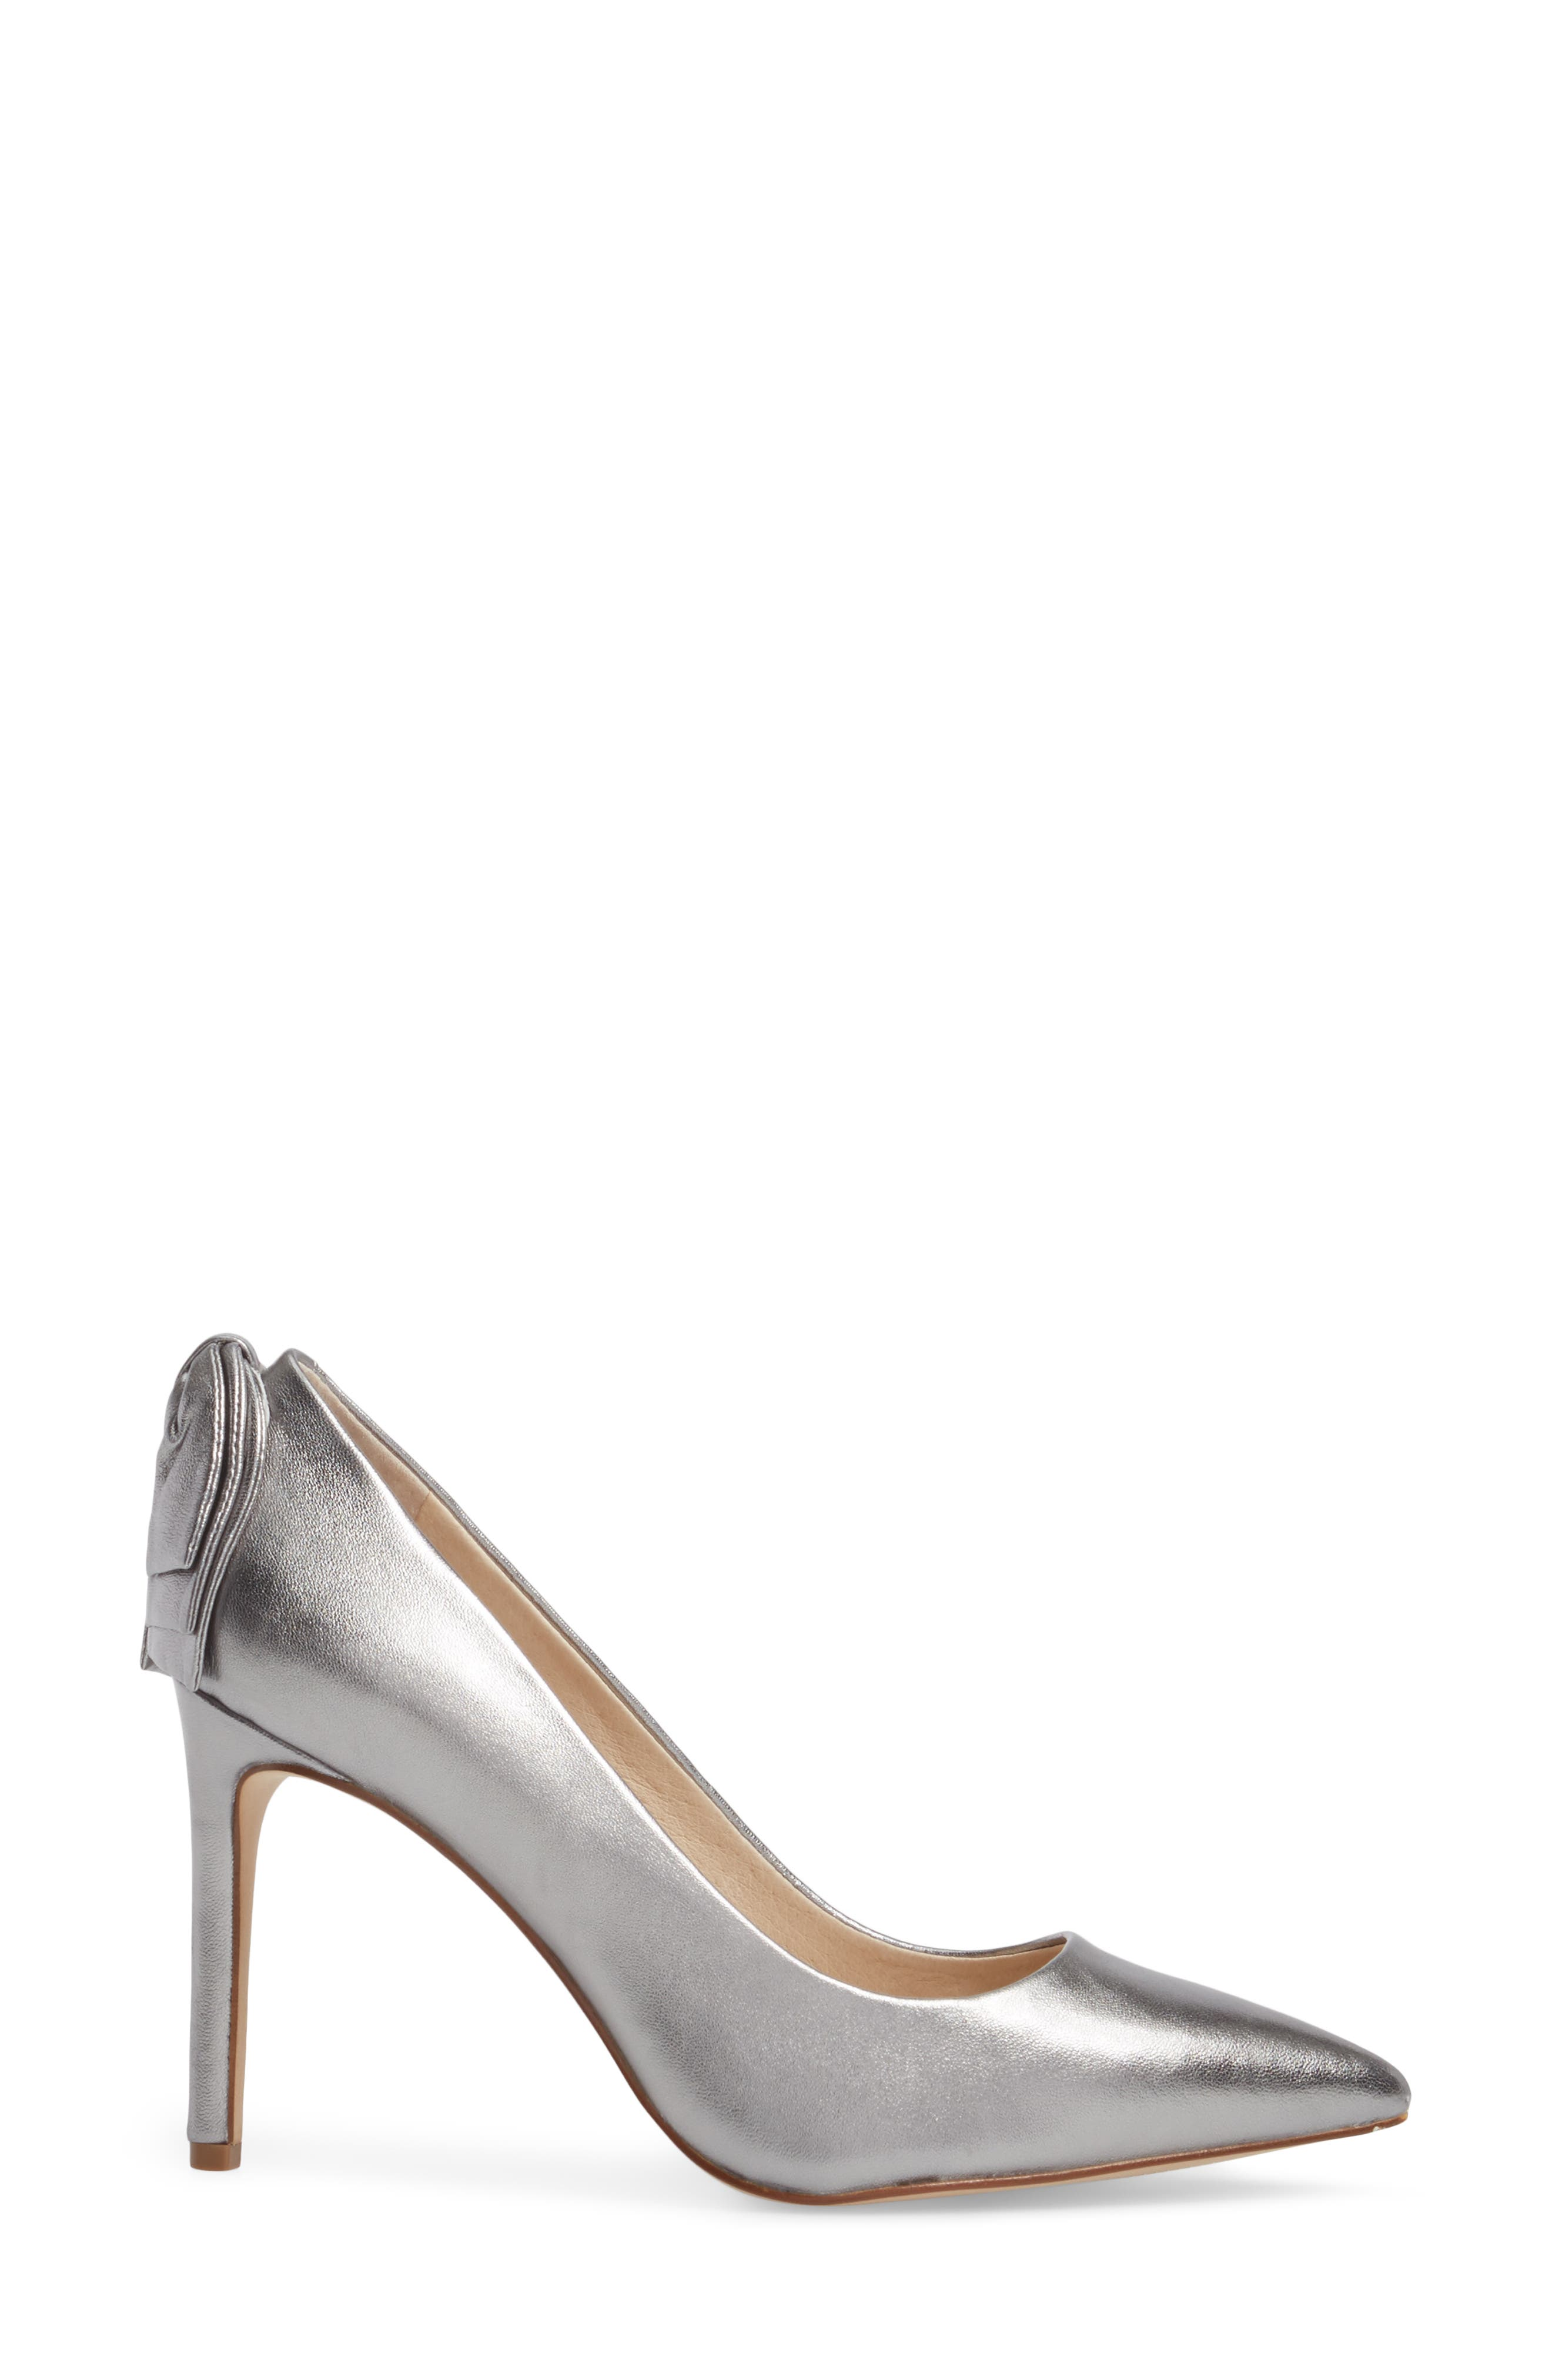 Josely Pointy Toe Pump,                             Alternate thumbnail 8, color,